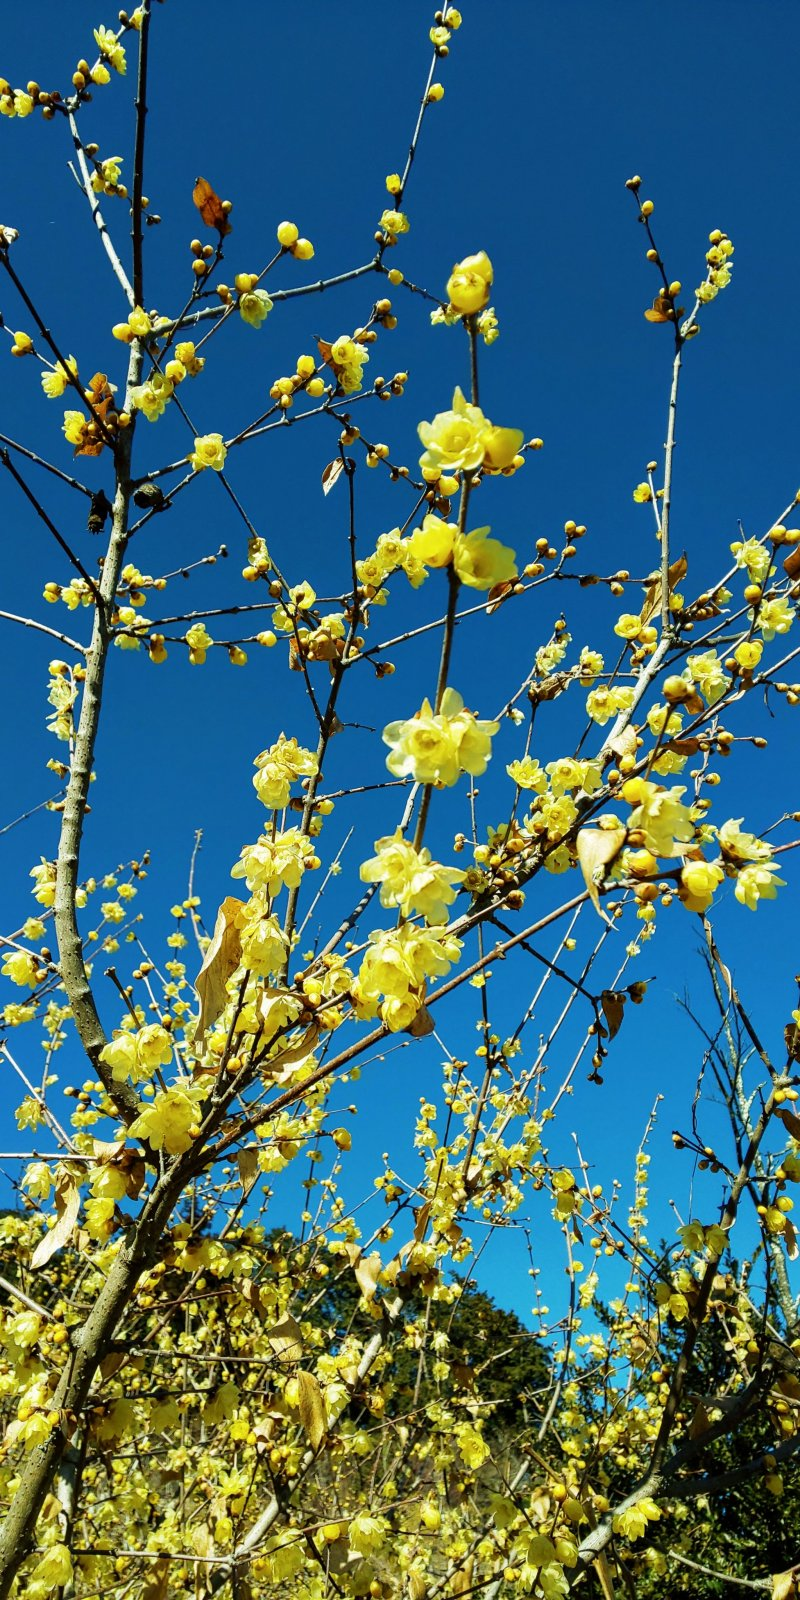 Wintersweet (Robai) at the Hodosan Wintersweet Garden, Nagatoro